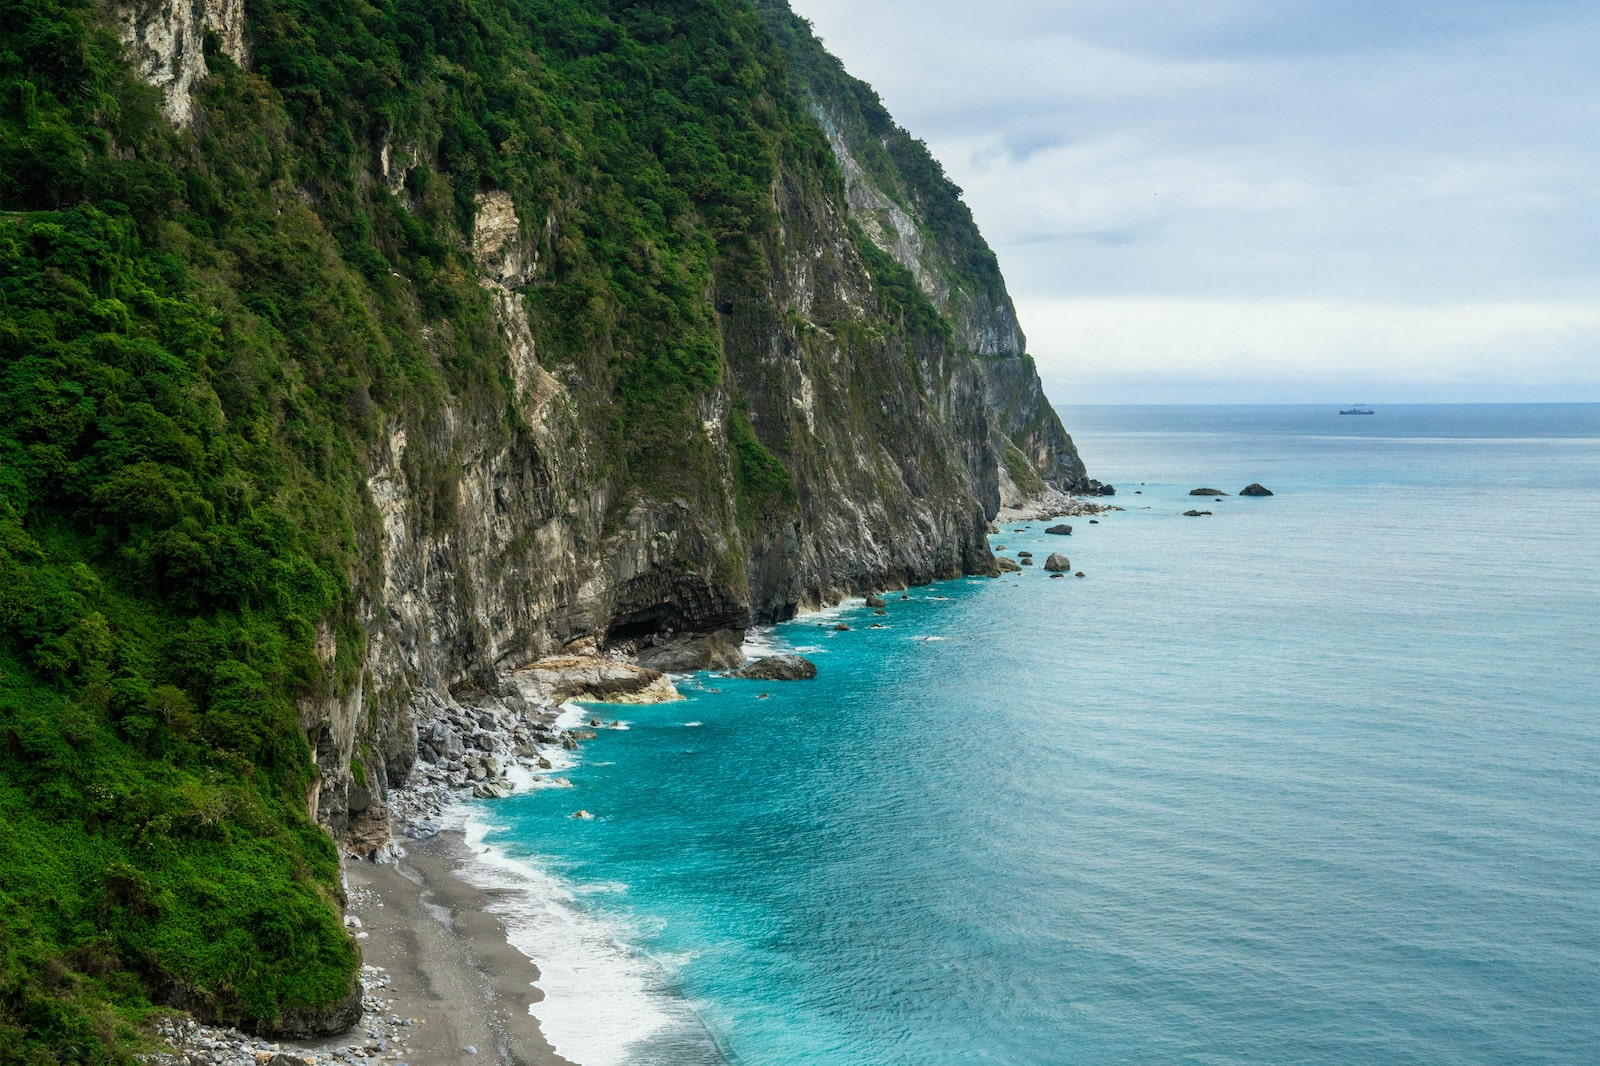 View of creek by Qingshui Cliff by the sea